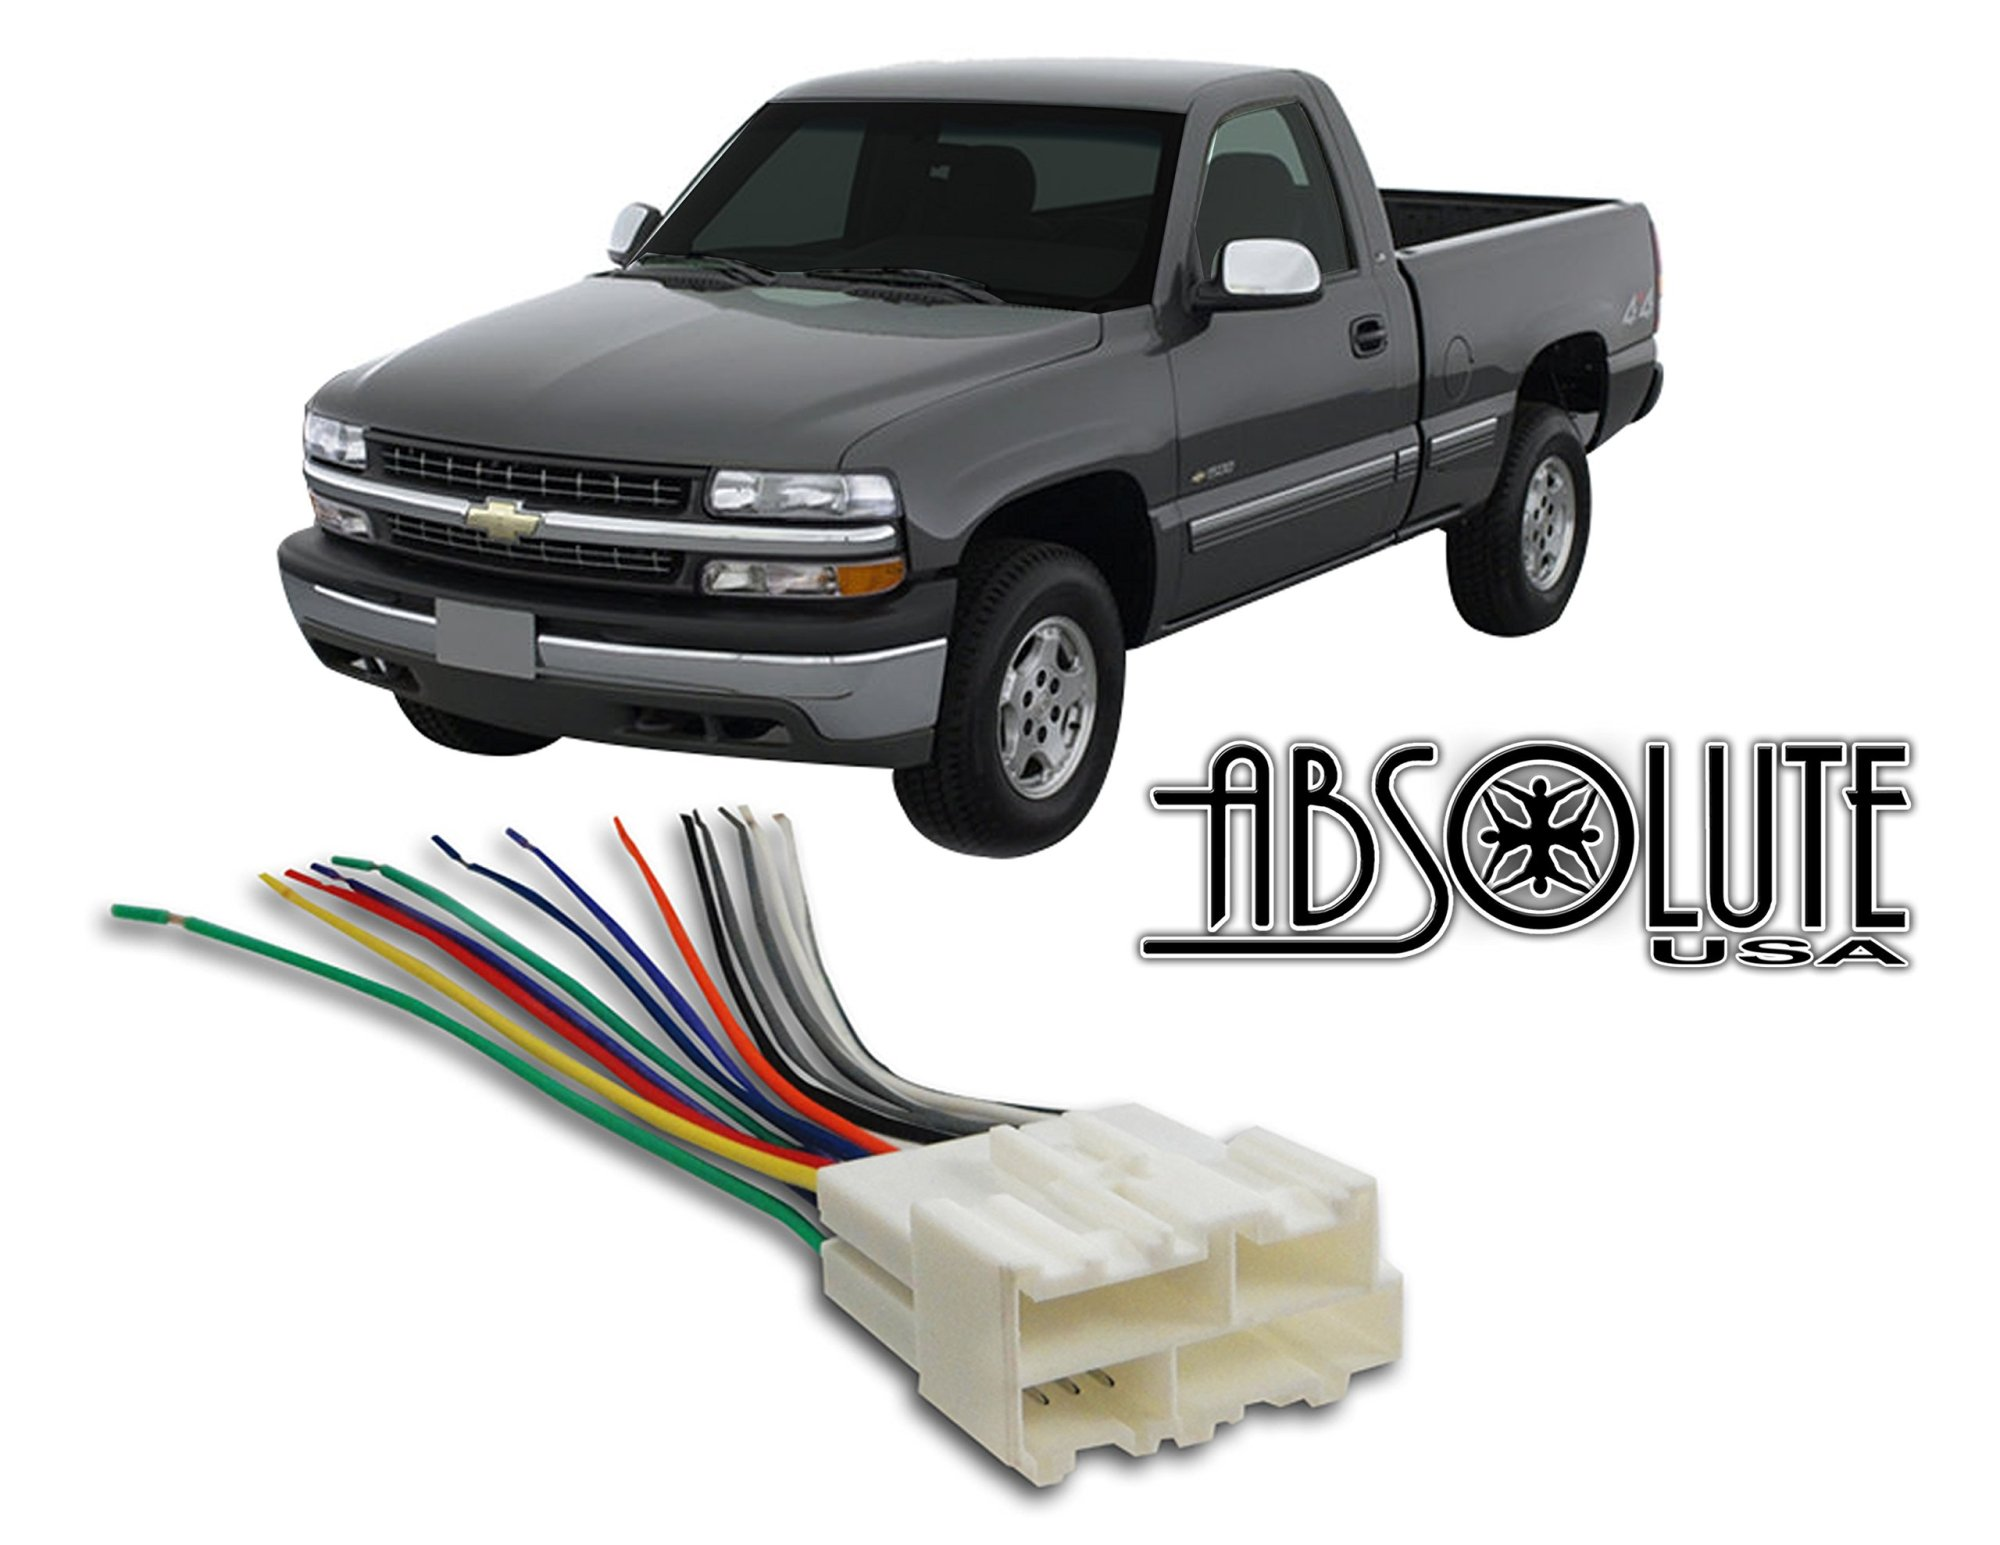 hight resolution of stereo wire harness chevrolet silverado pickup 99 00 01 02 1999 2000 2001 2002aftermarket radio